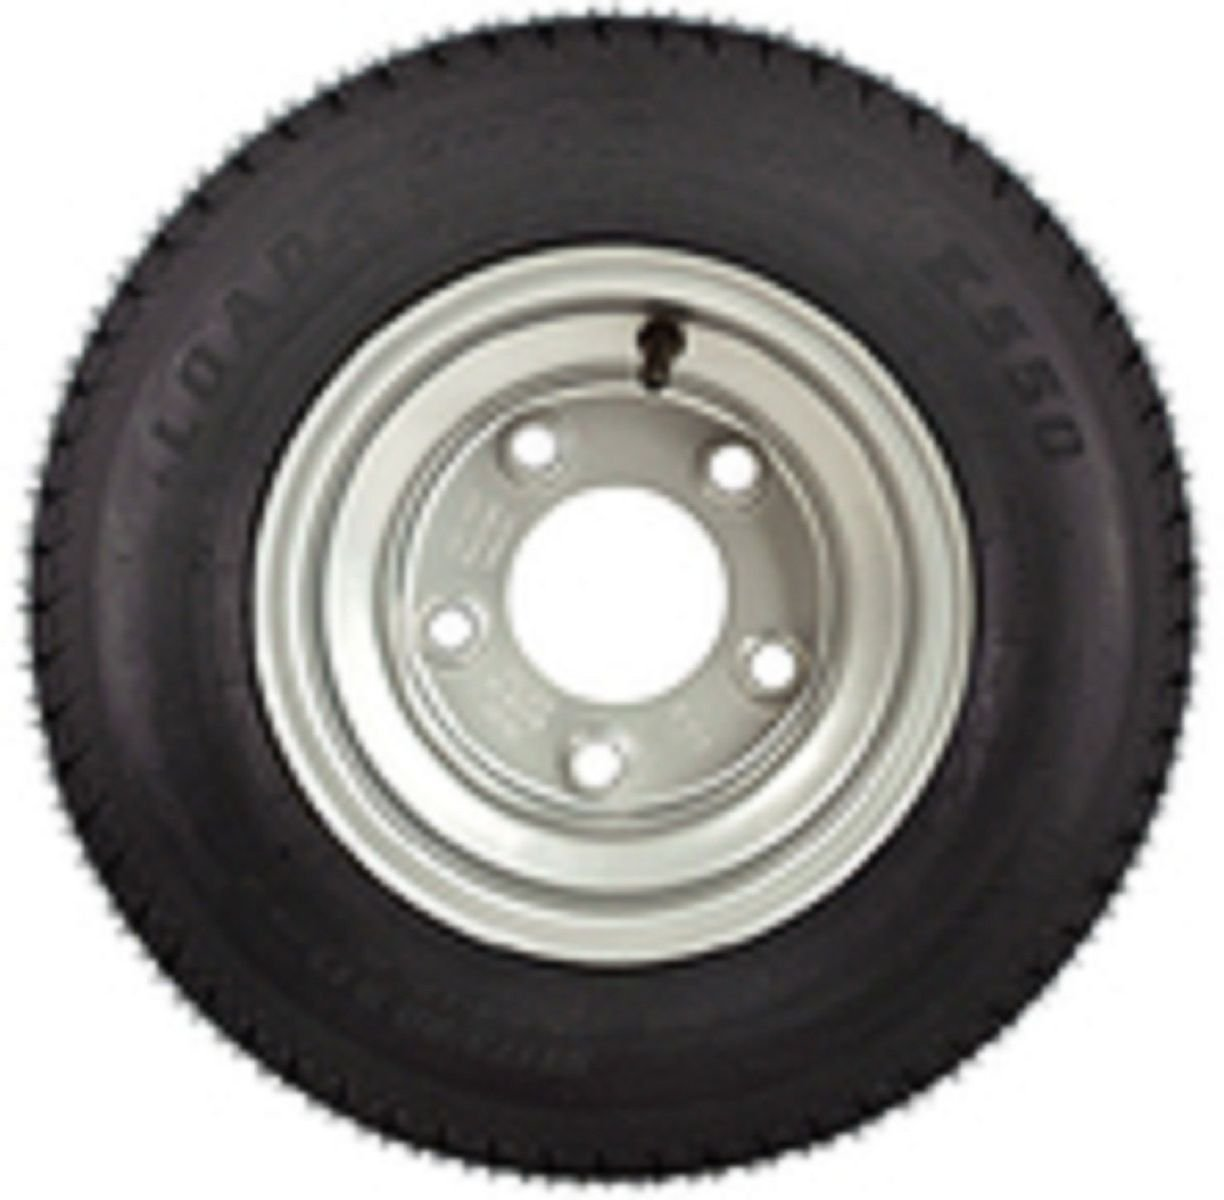 NEW LOADSTAR TIRES ST185/80D13 D/5H MOD GALV TIR 3S336 by Boating Accessories